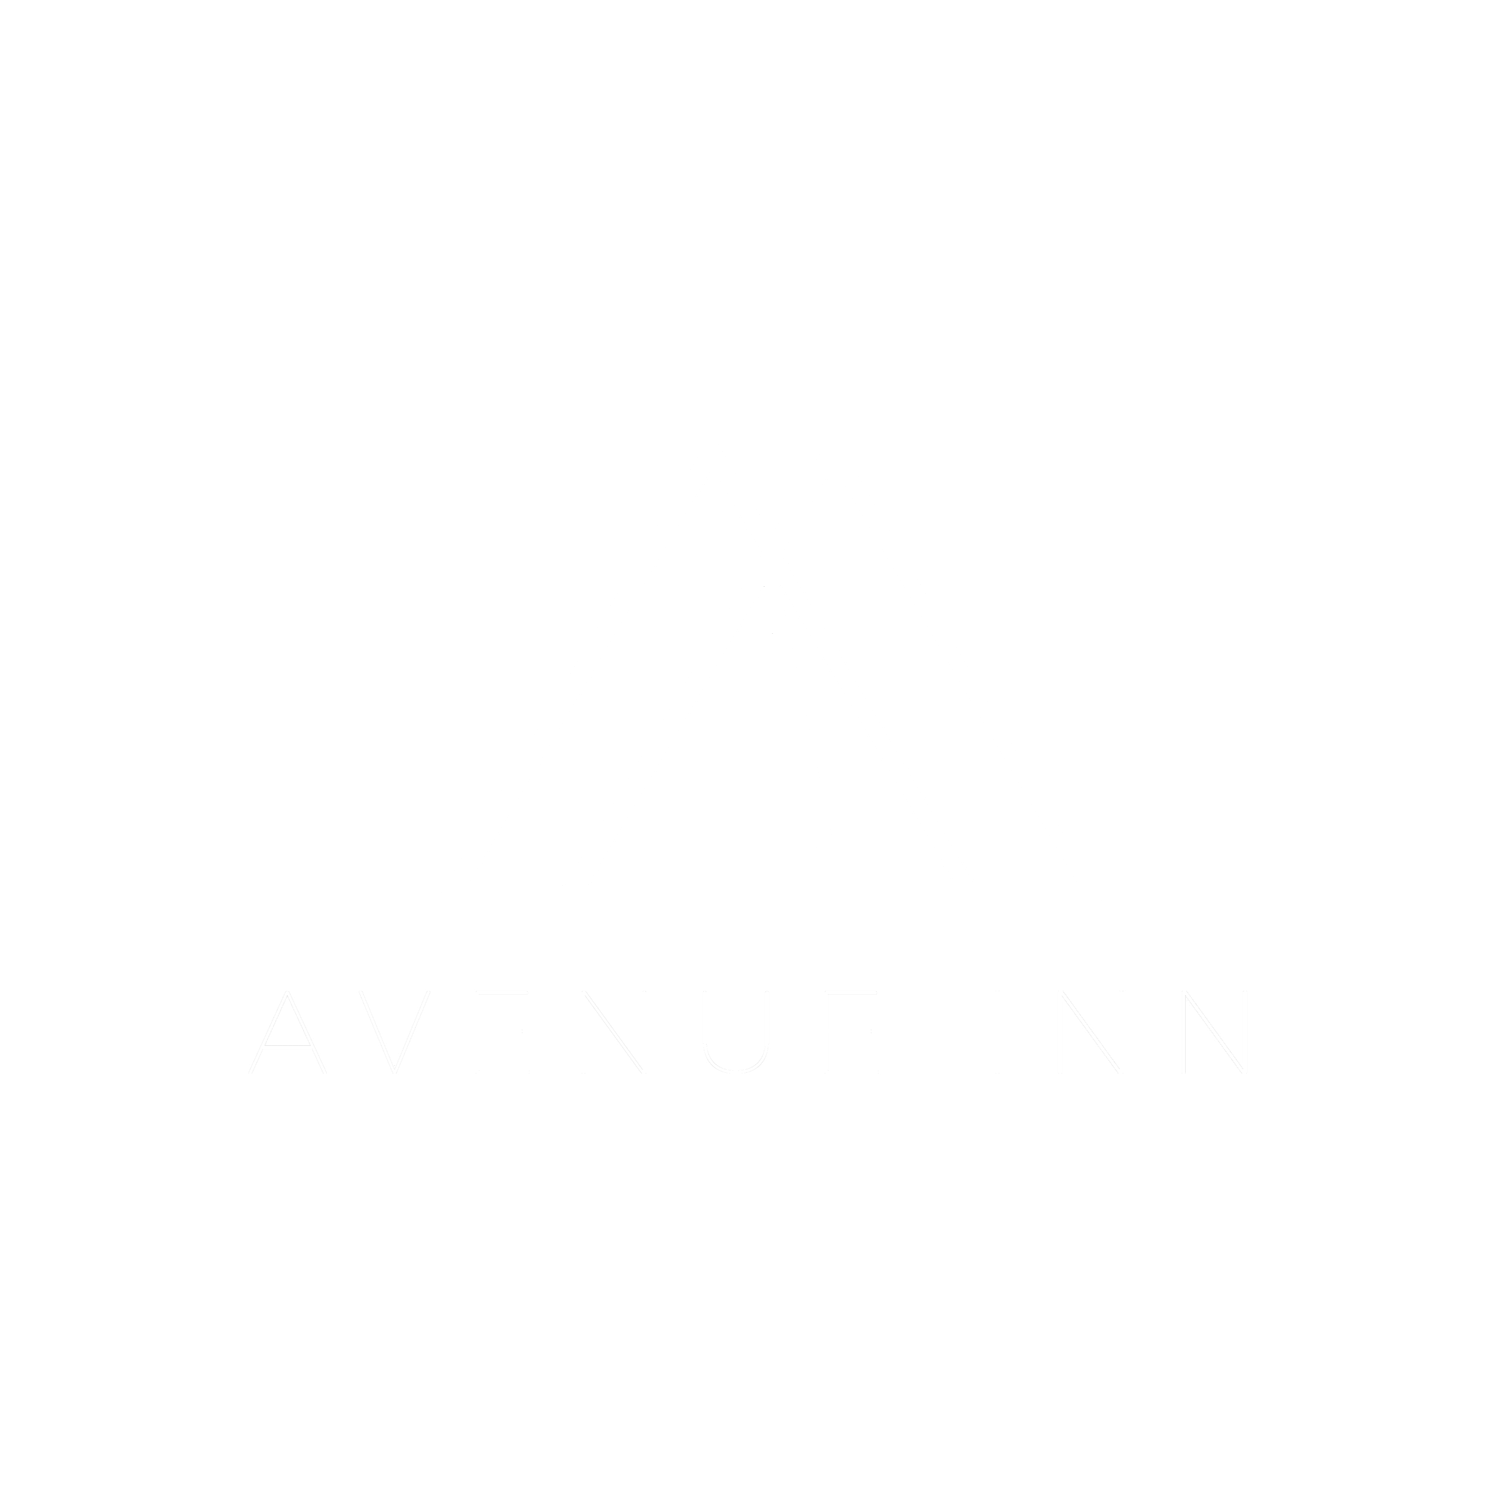 Avenue Inn - Alternative Rock Band